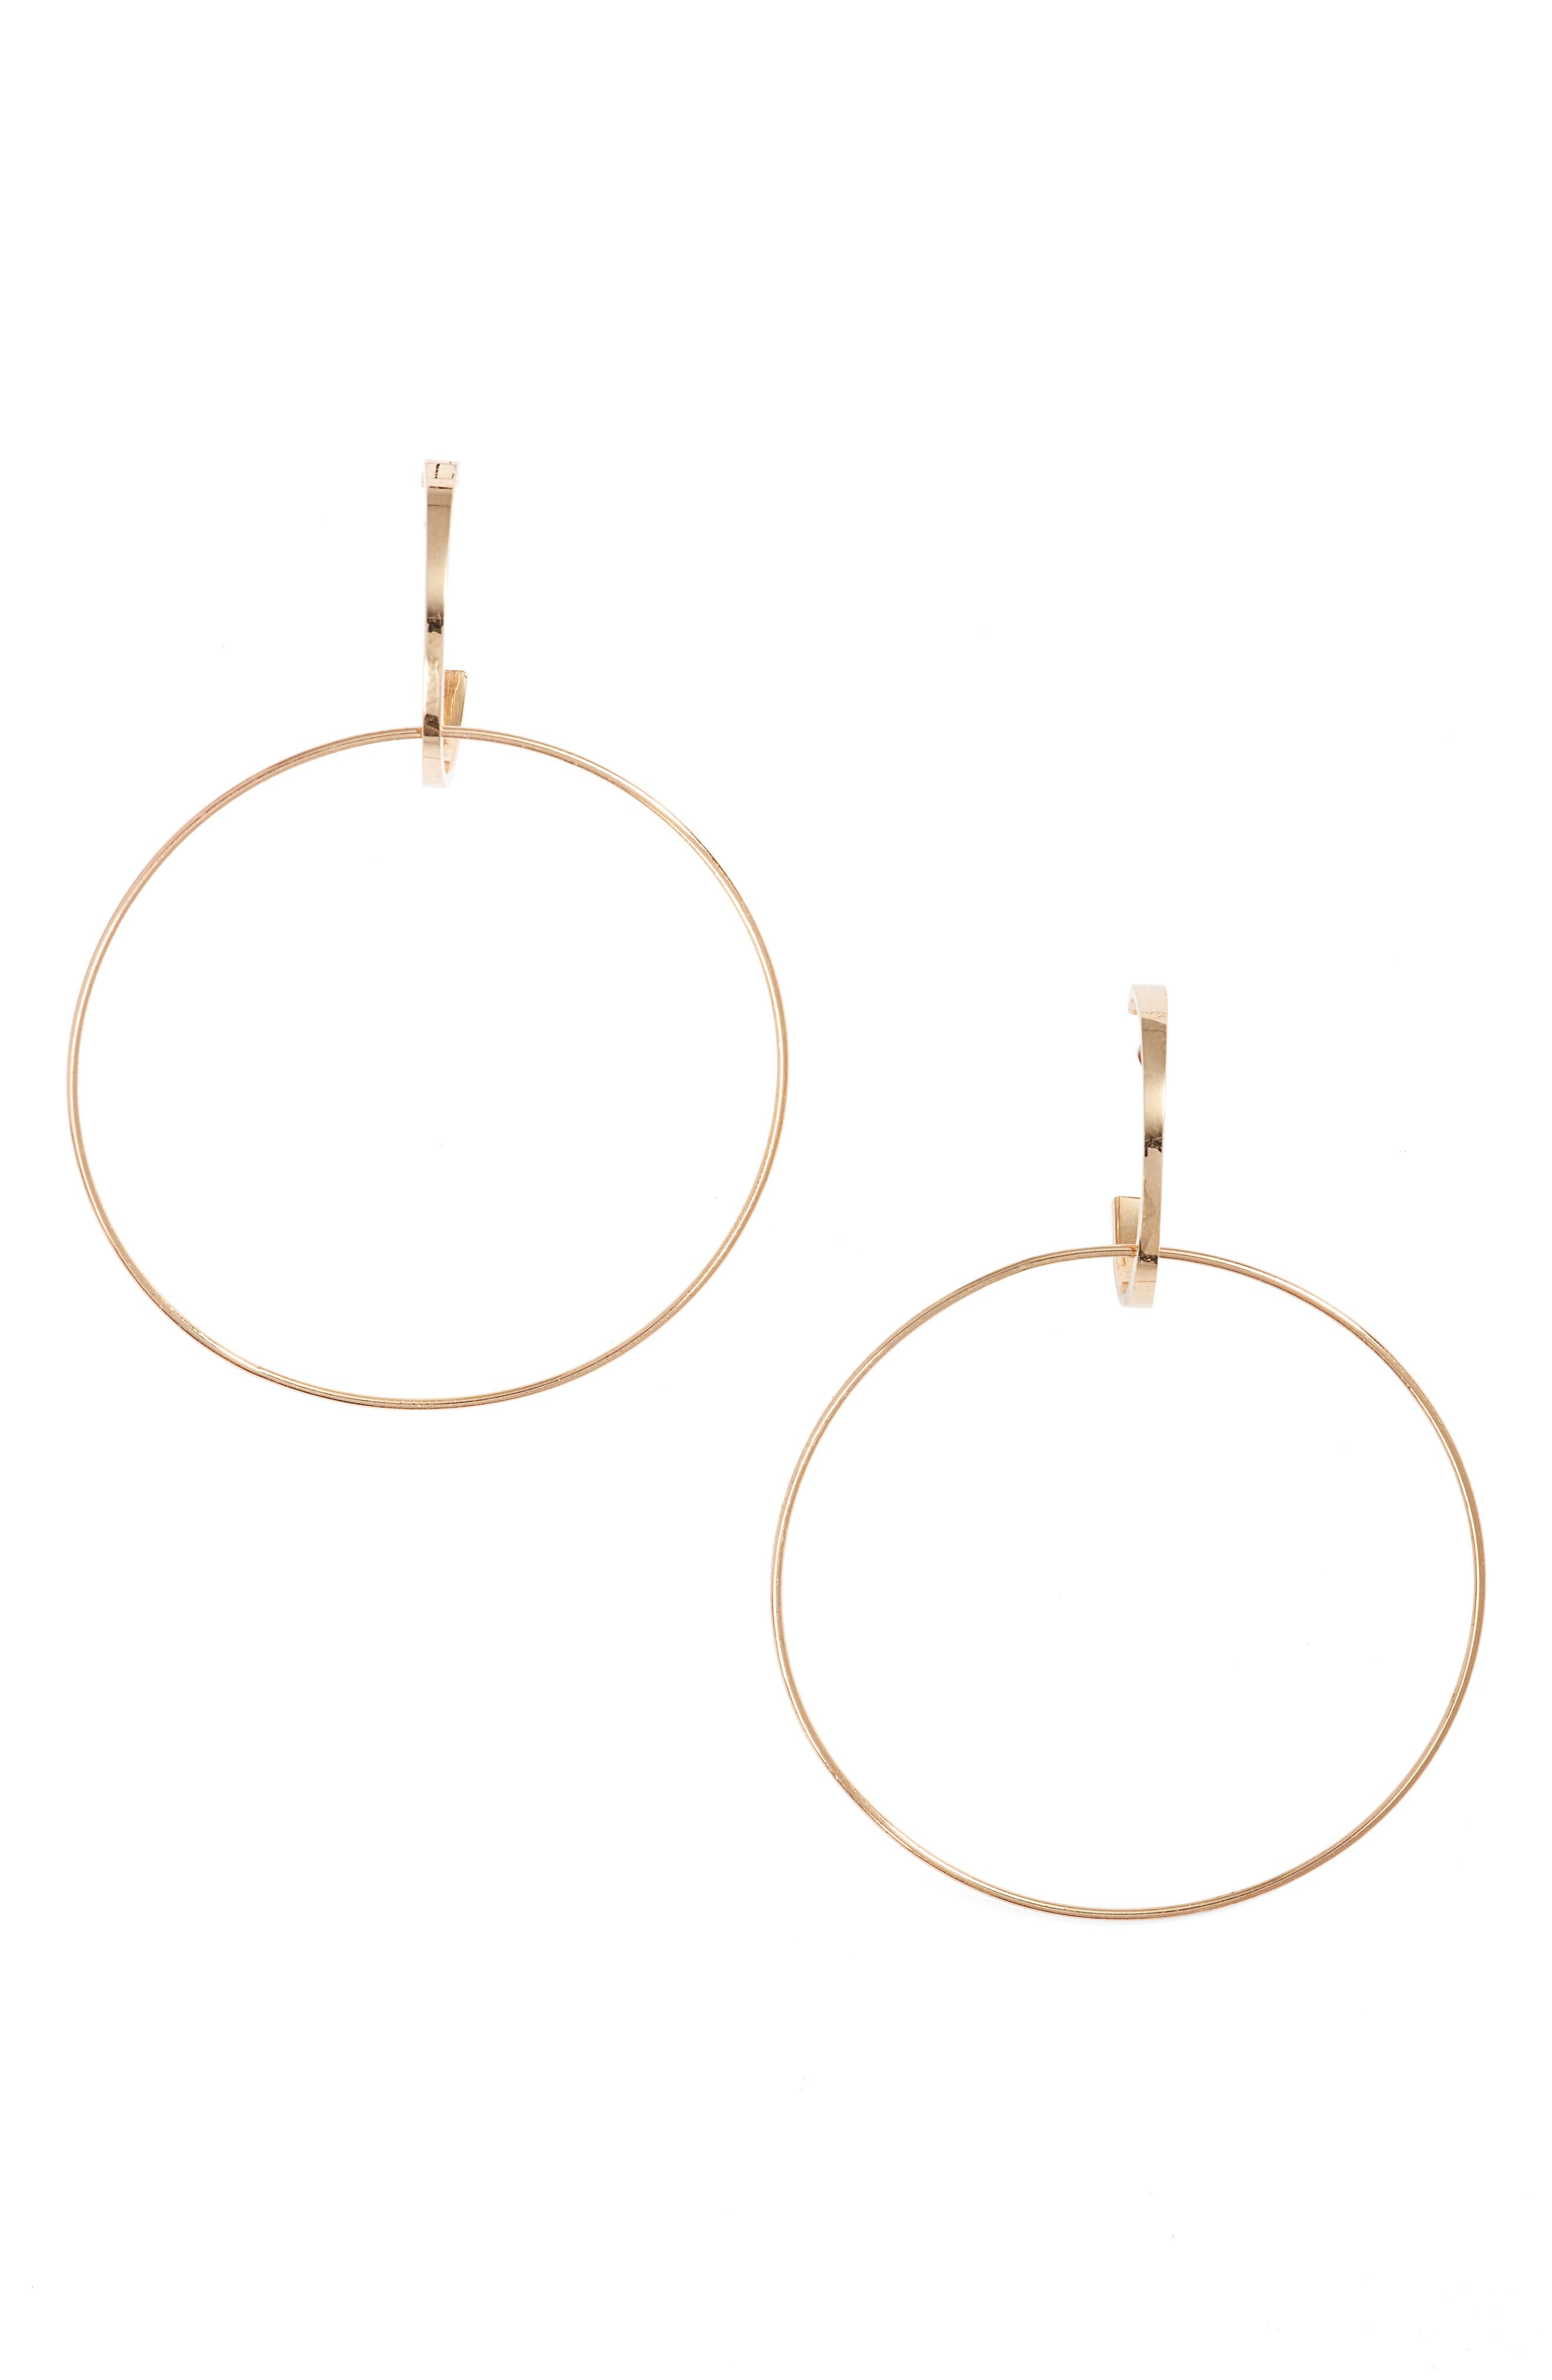 Main Image - Lana Jewelry Bond Small Double Hoop Earrings